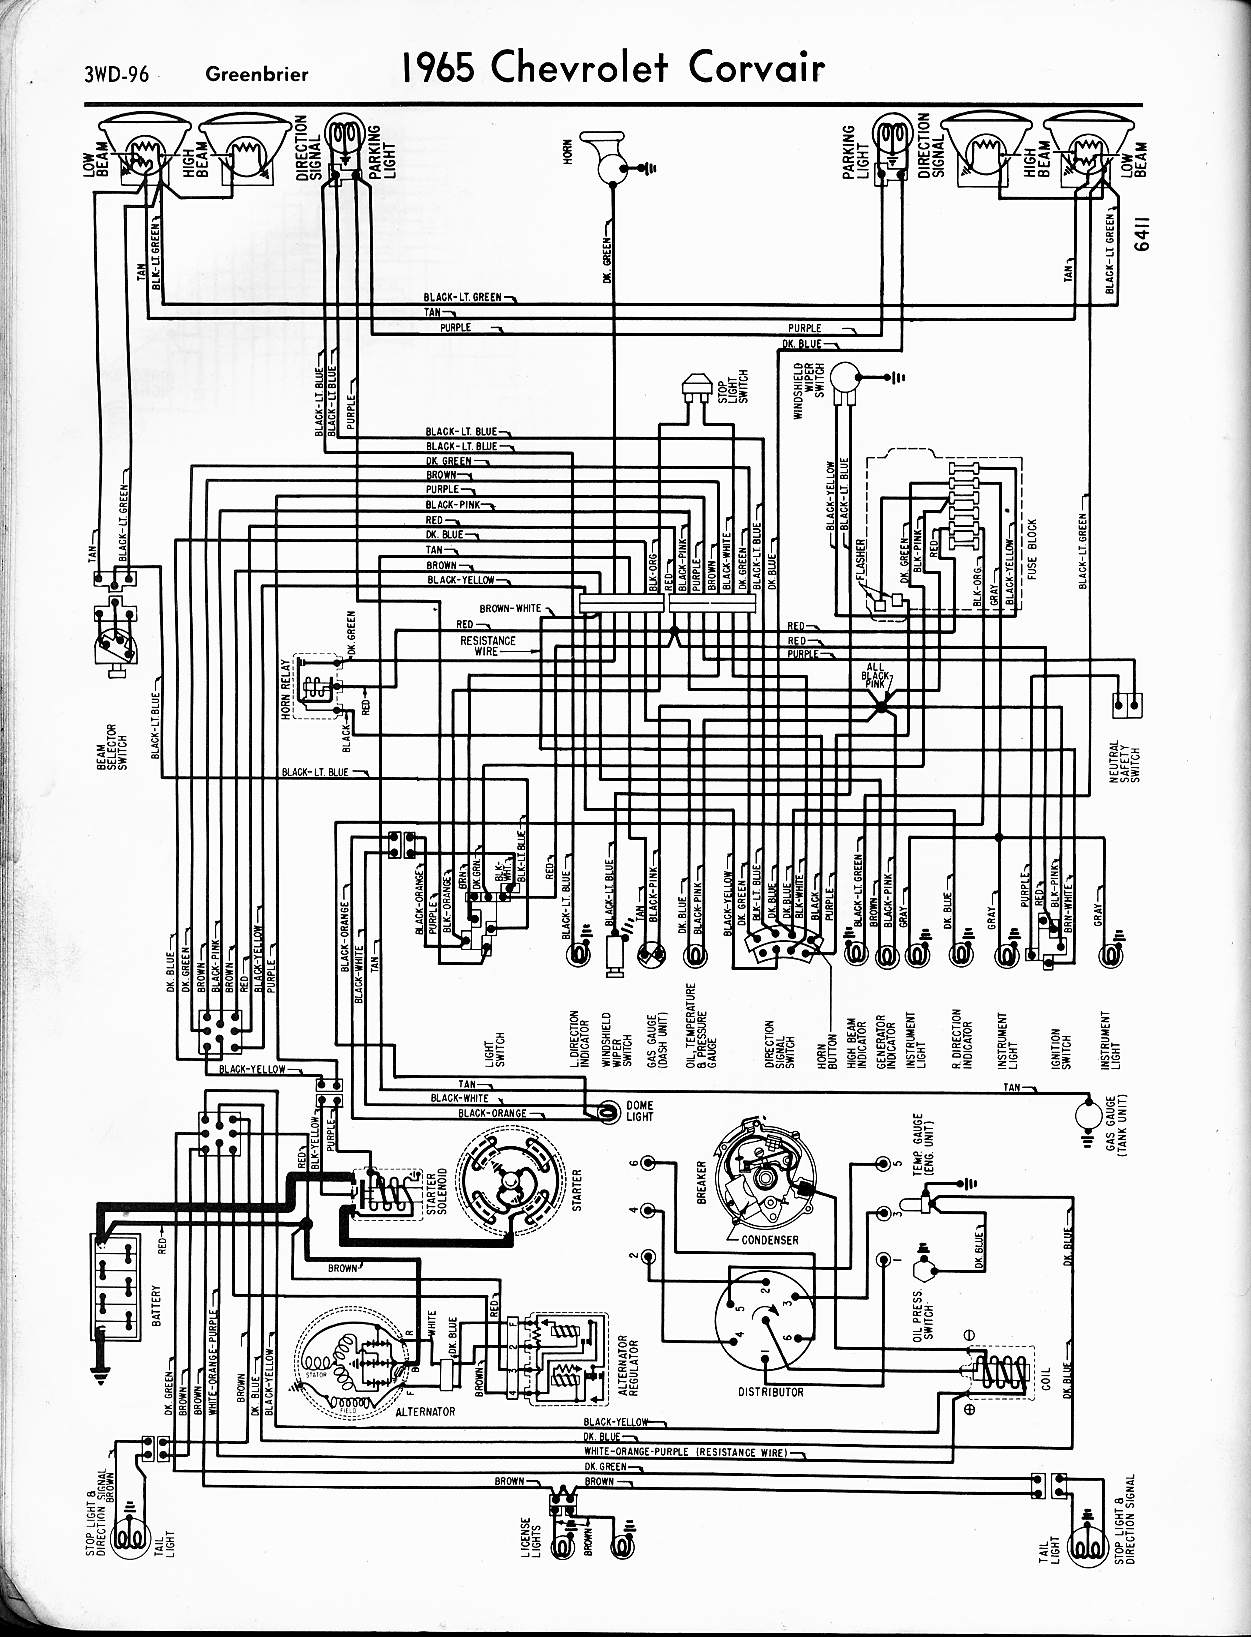 wiring diagrams for 1964 chevy impala diagrams download free printable wiring. Black Bedroom Furniture Sets. Home Design Ideas